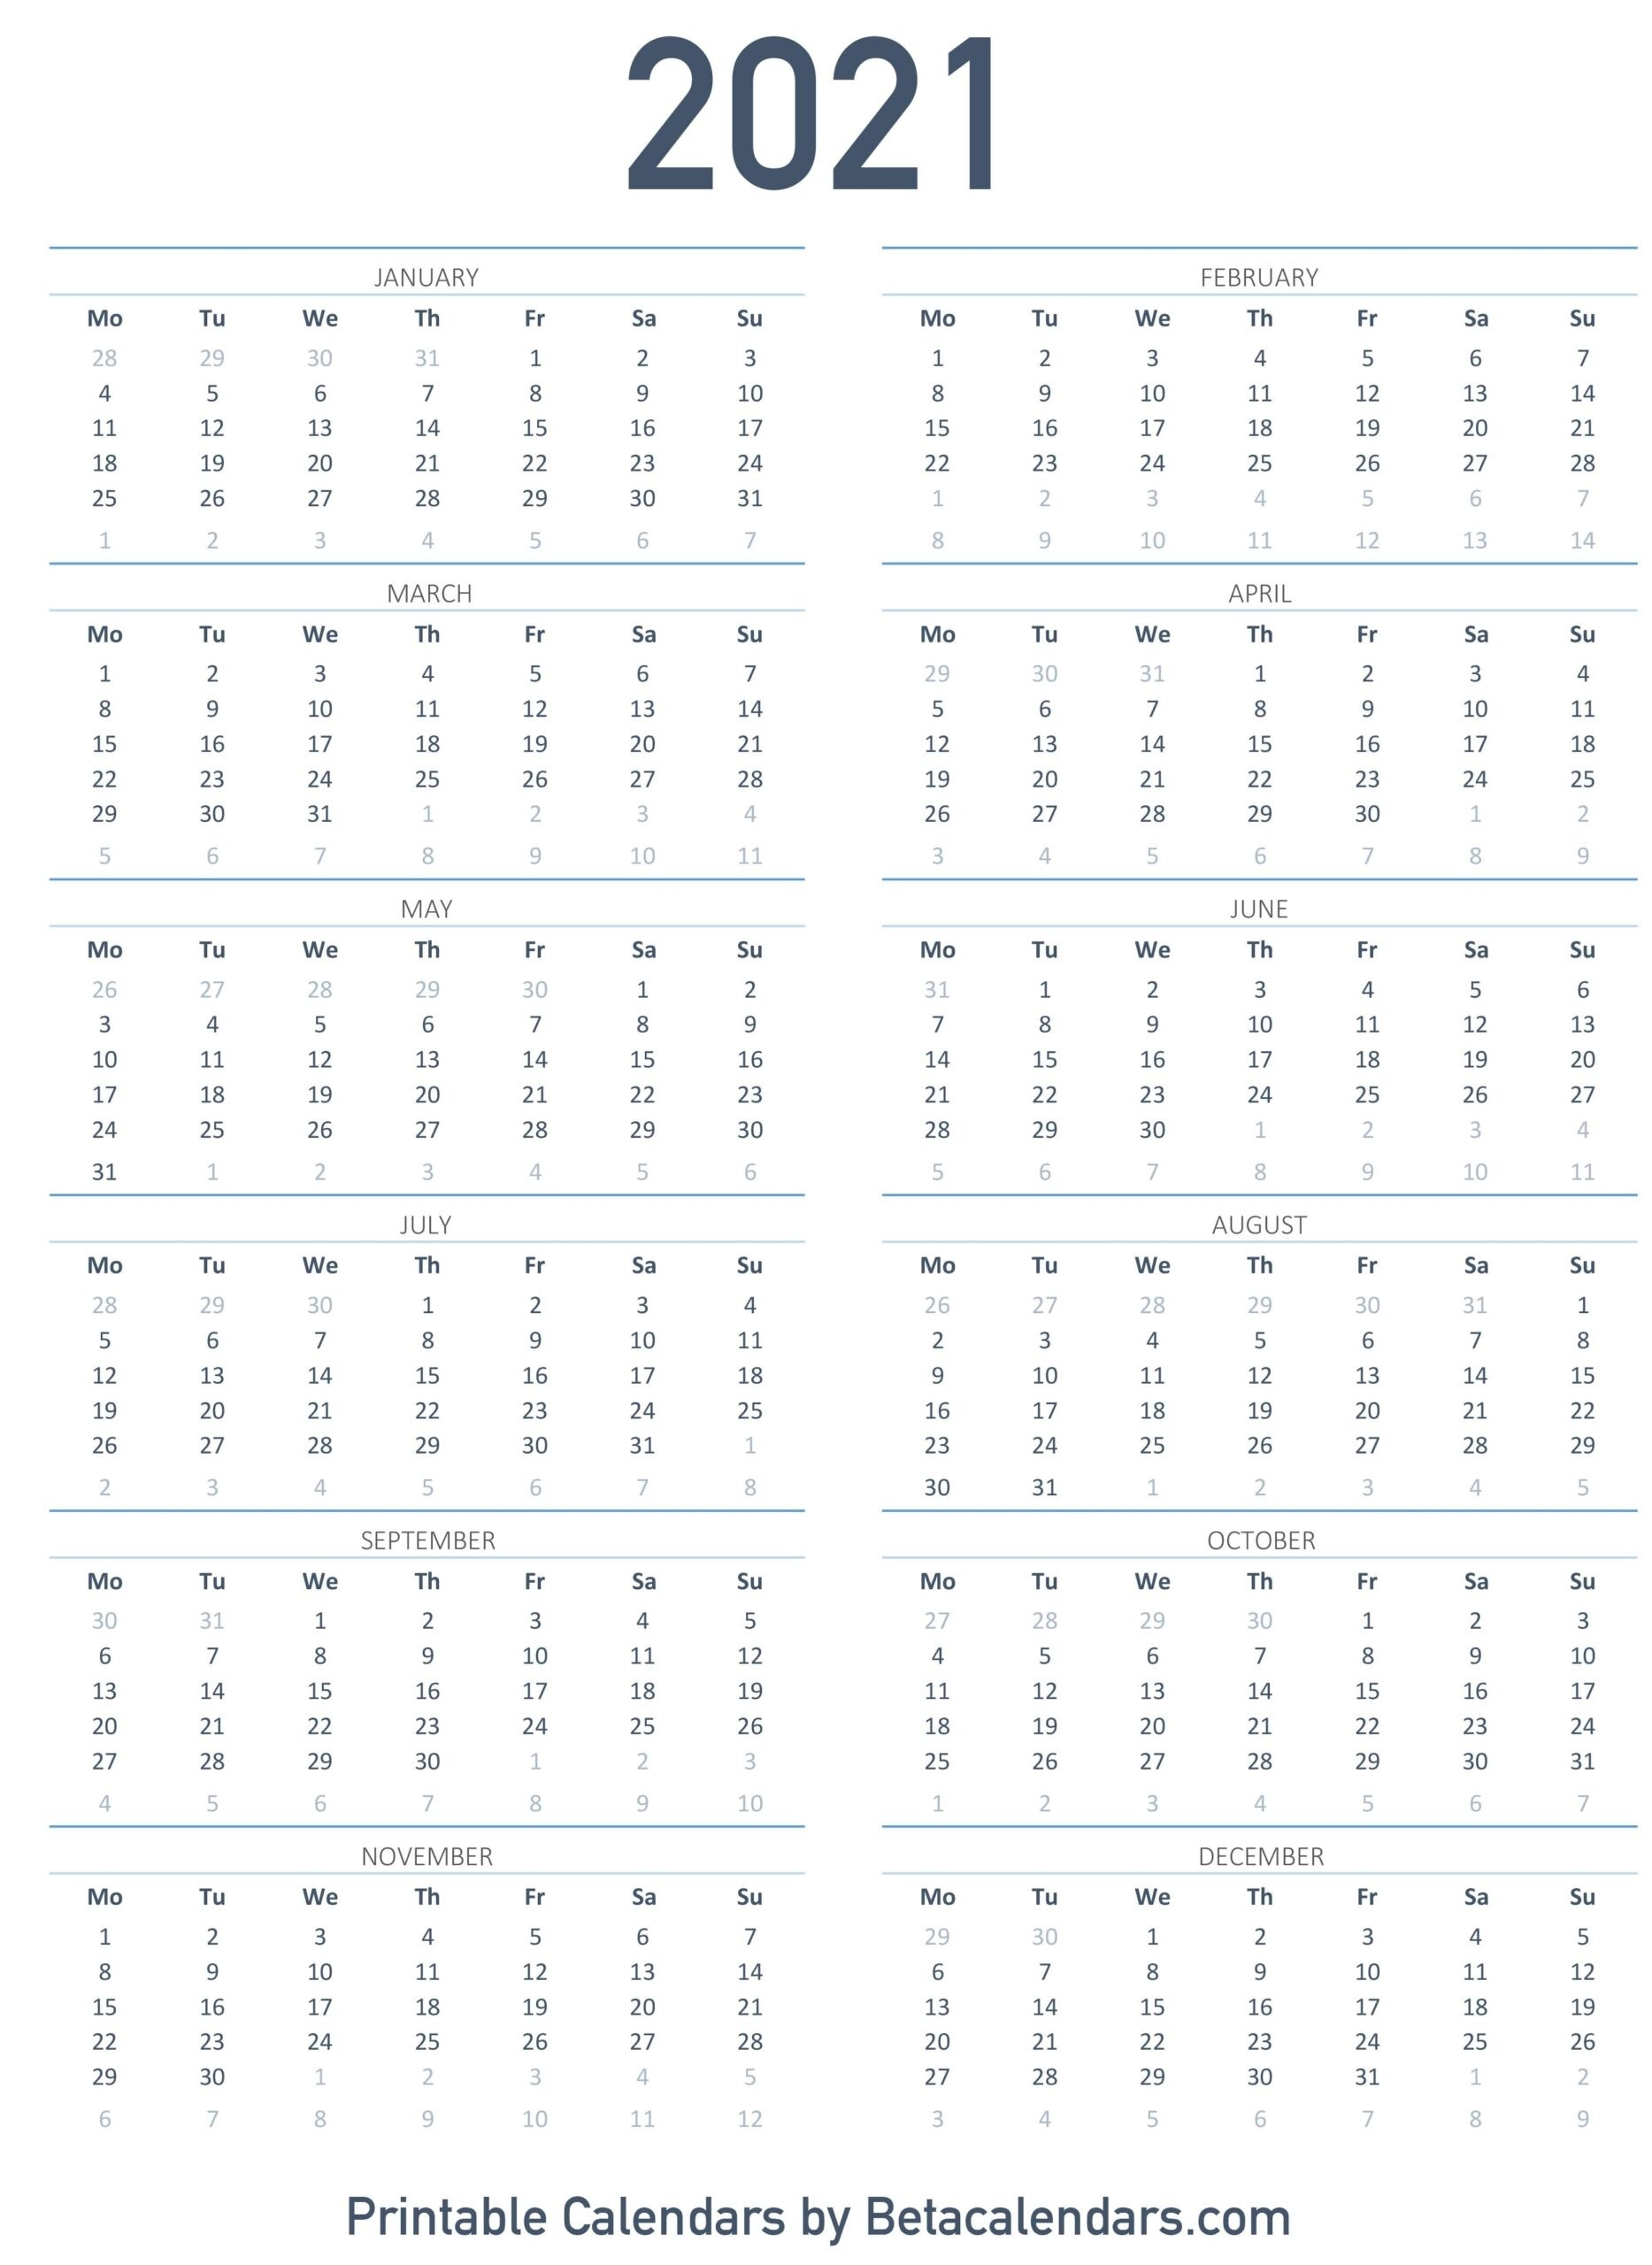 Printable Calendar 2021 | Download & Print Free Blank Calendars-Printable 2021 Atteance Calendar